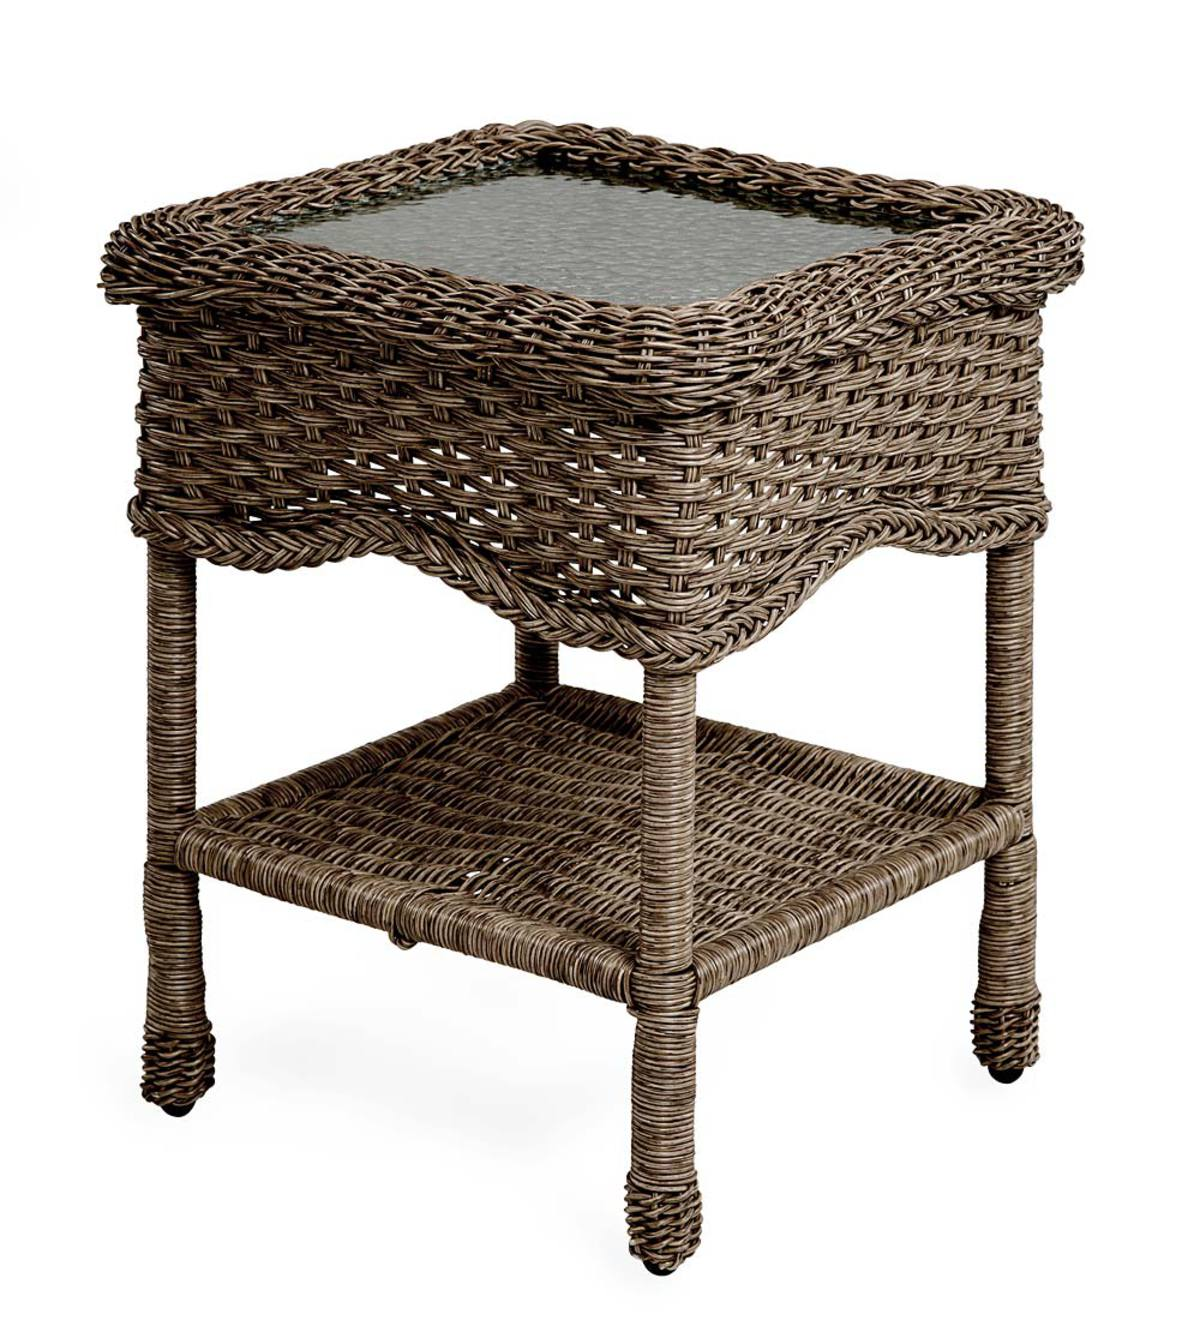 Prospect Hill Wicker End Table with Glass Tabletop - Beach House Walnut